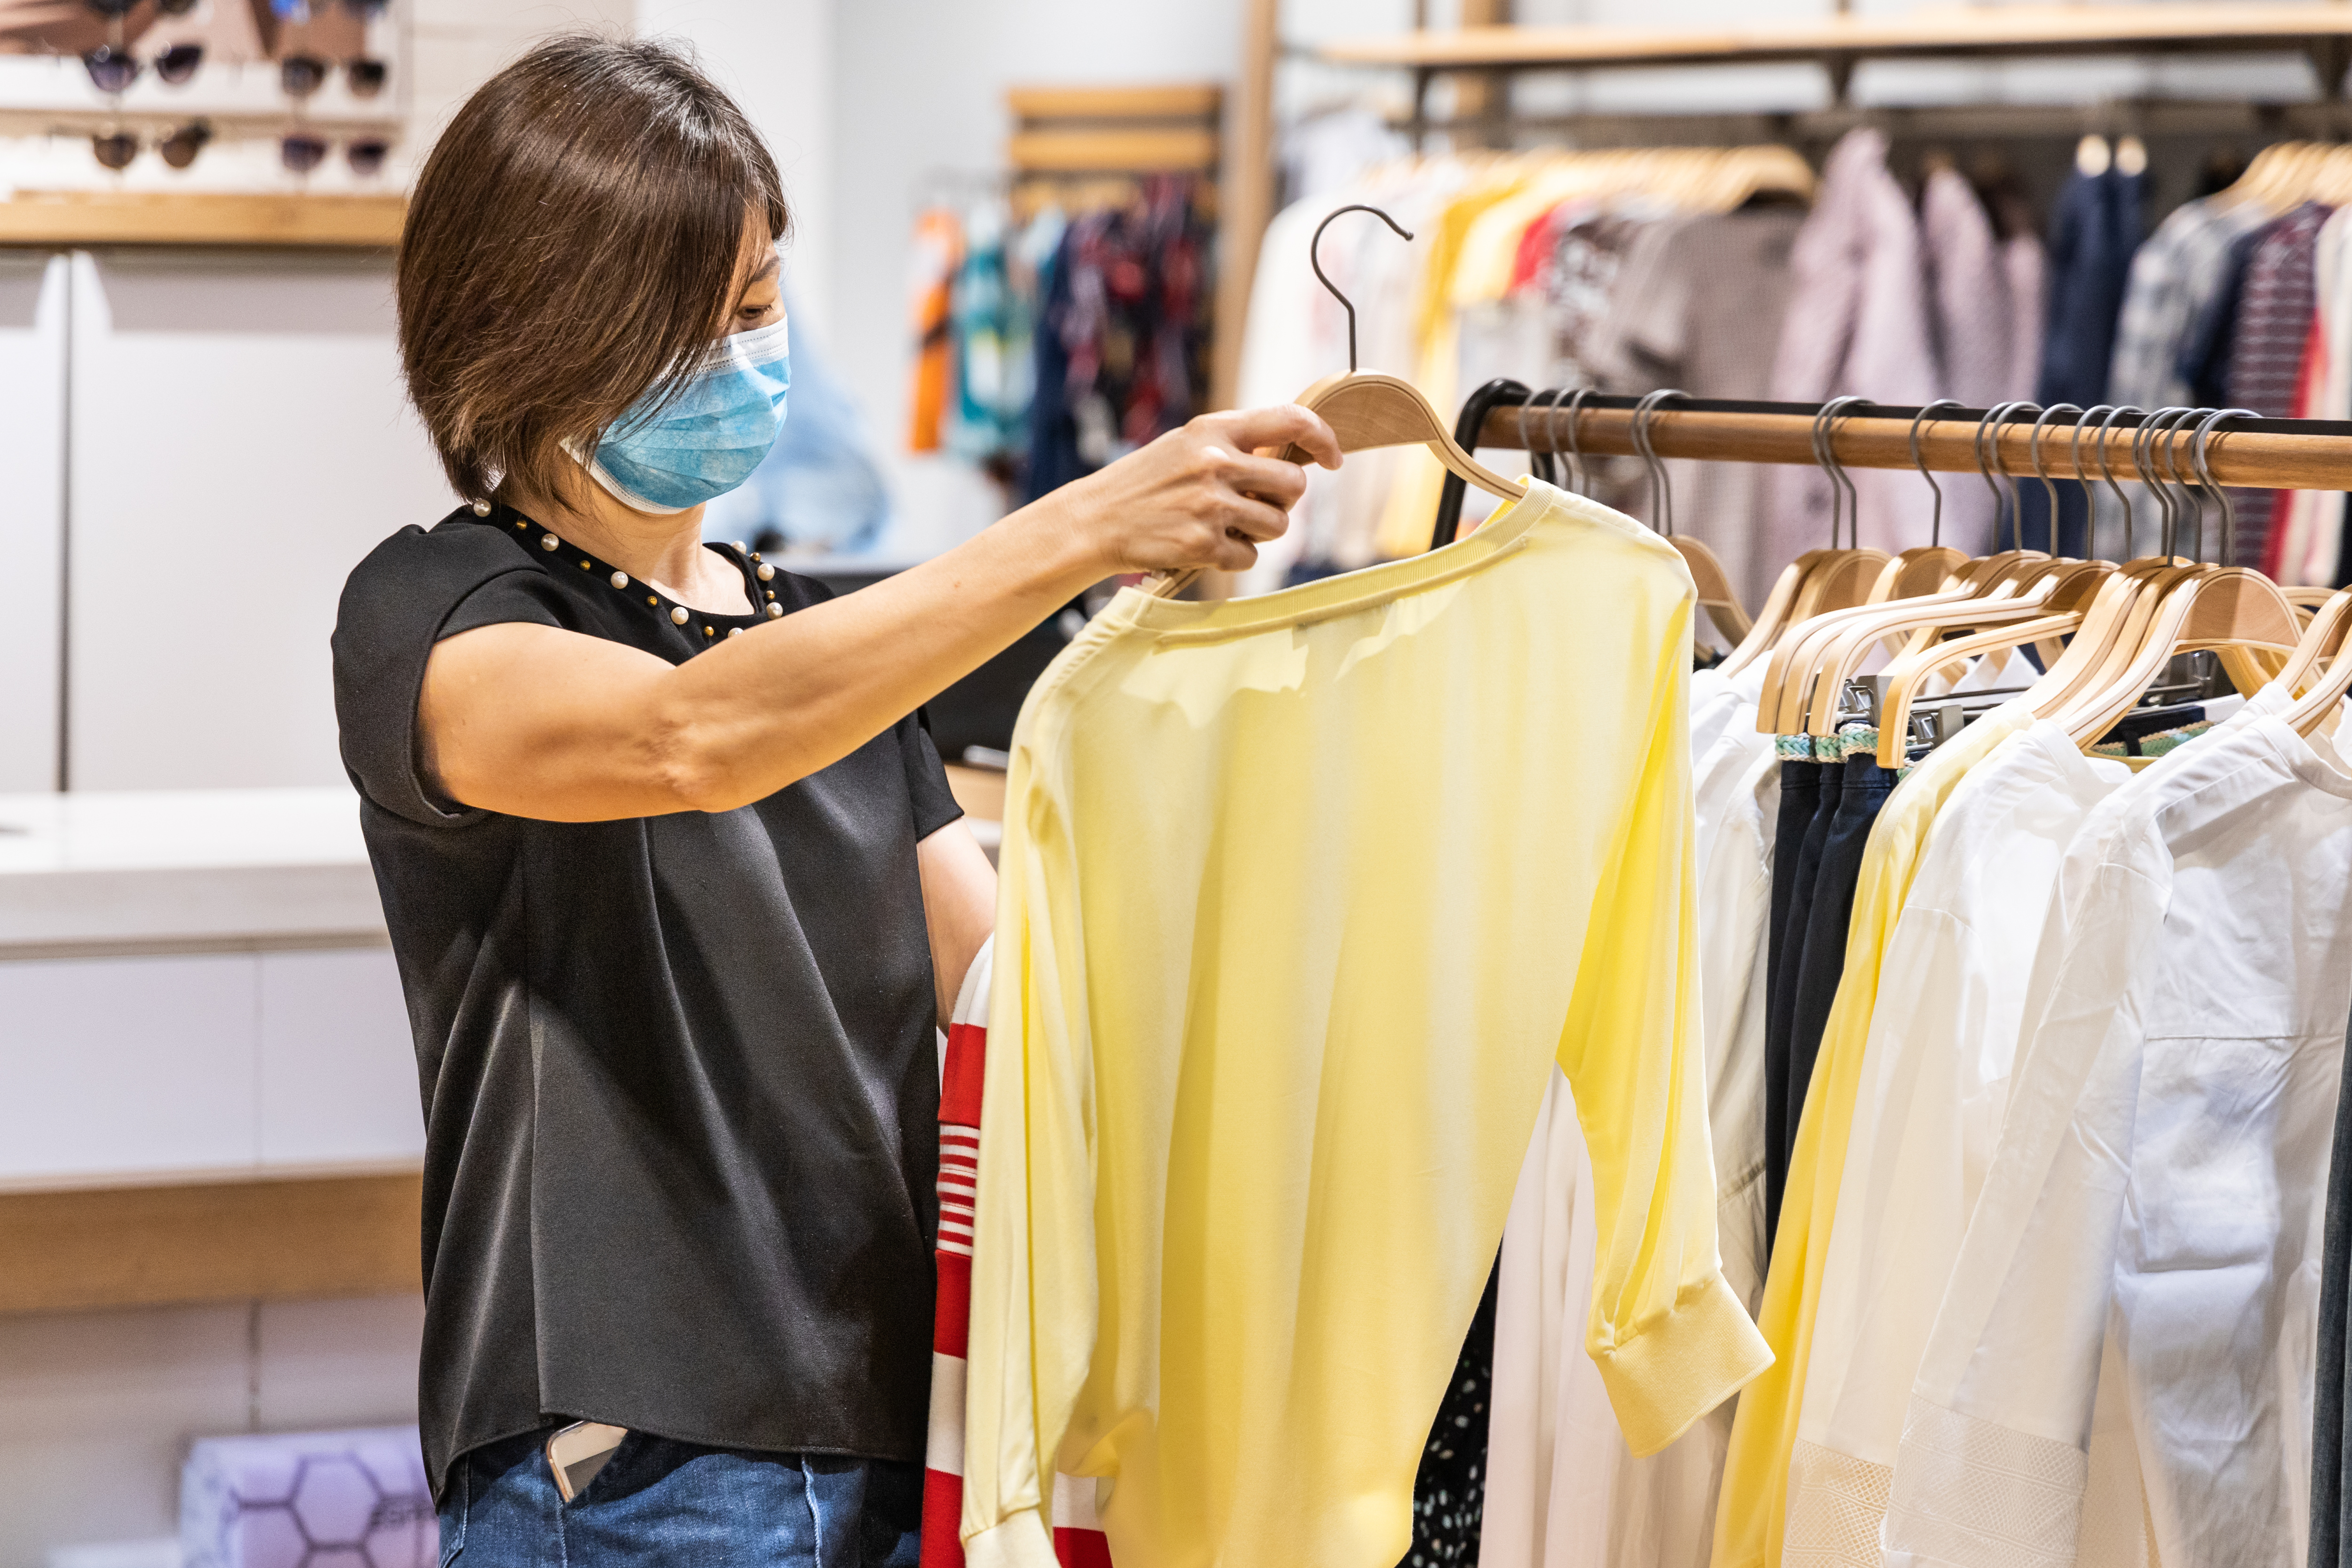 woman shopping apparels in clothing boutique with protective face mask as new normal requirement in Malaysia